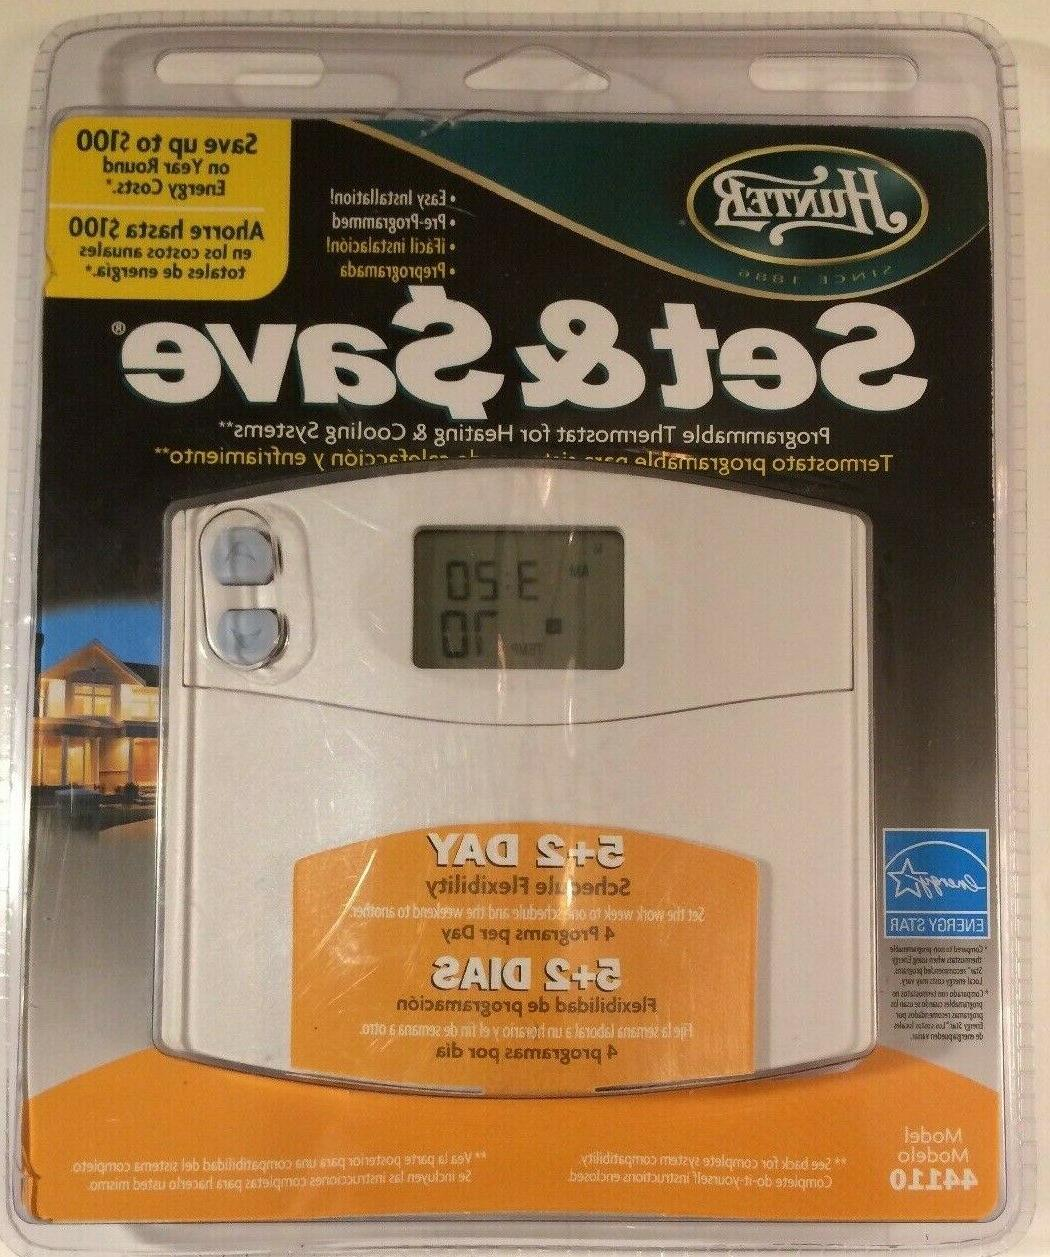 44110 set and save programmable thermostat nib